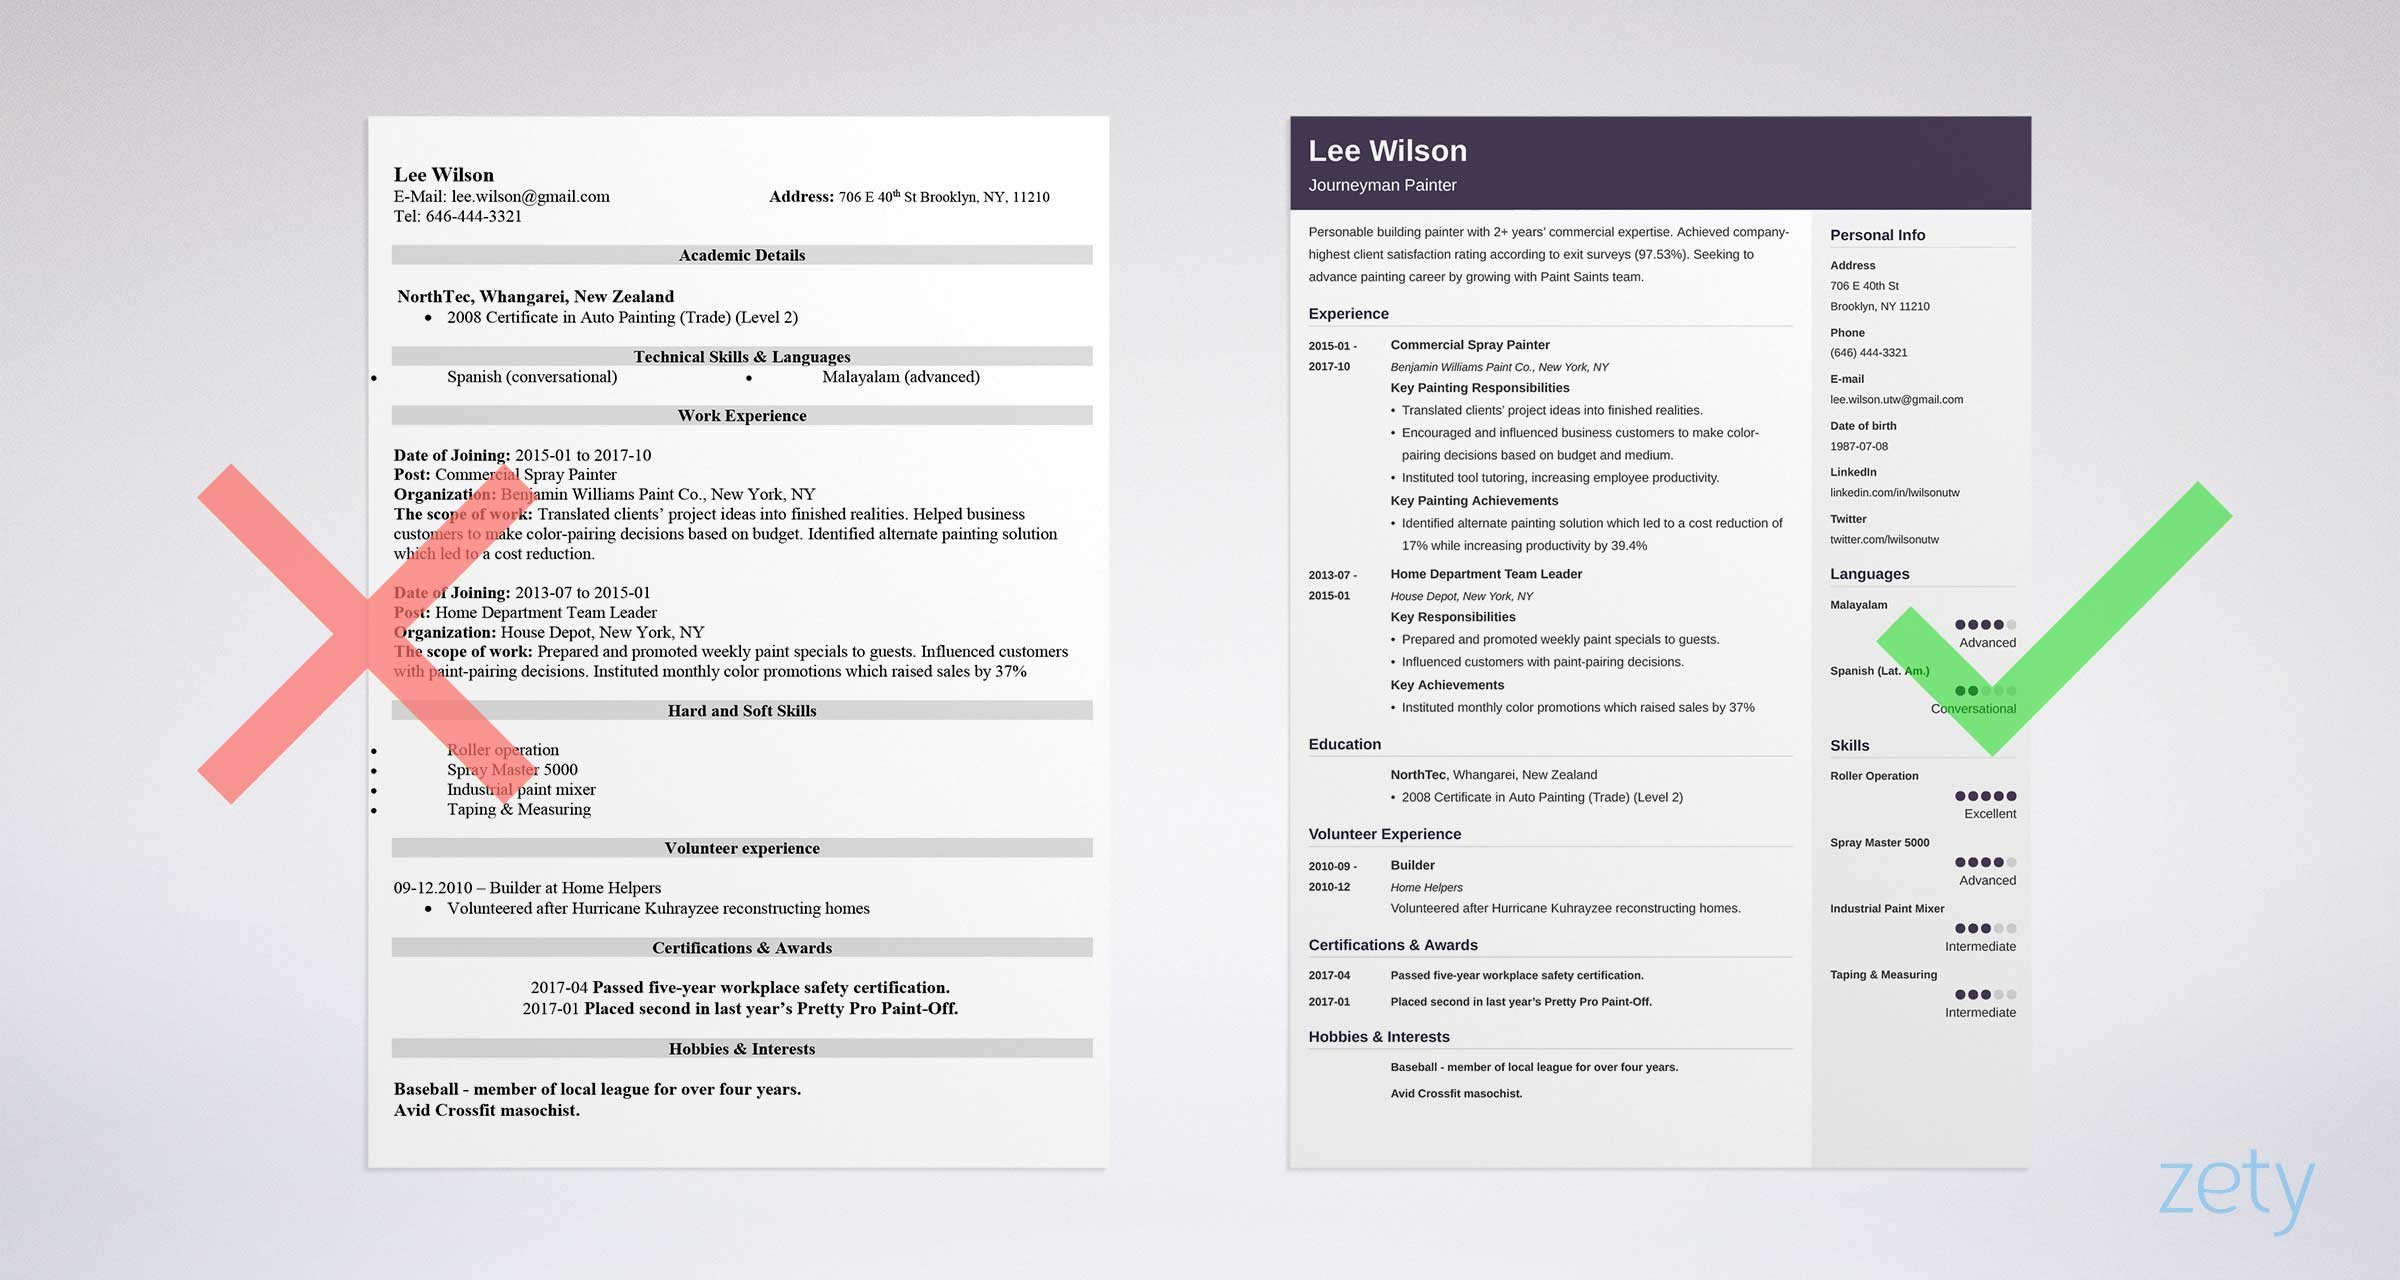 unique resume templates to use now best looking wpm on well rounded softball coach sample Resume Best Looking Resume Templates